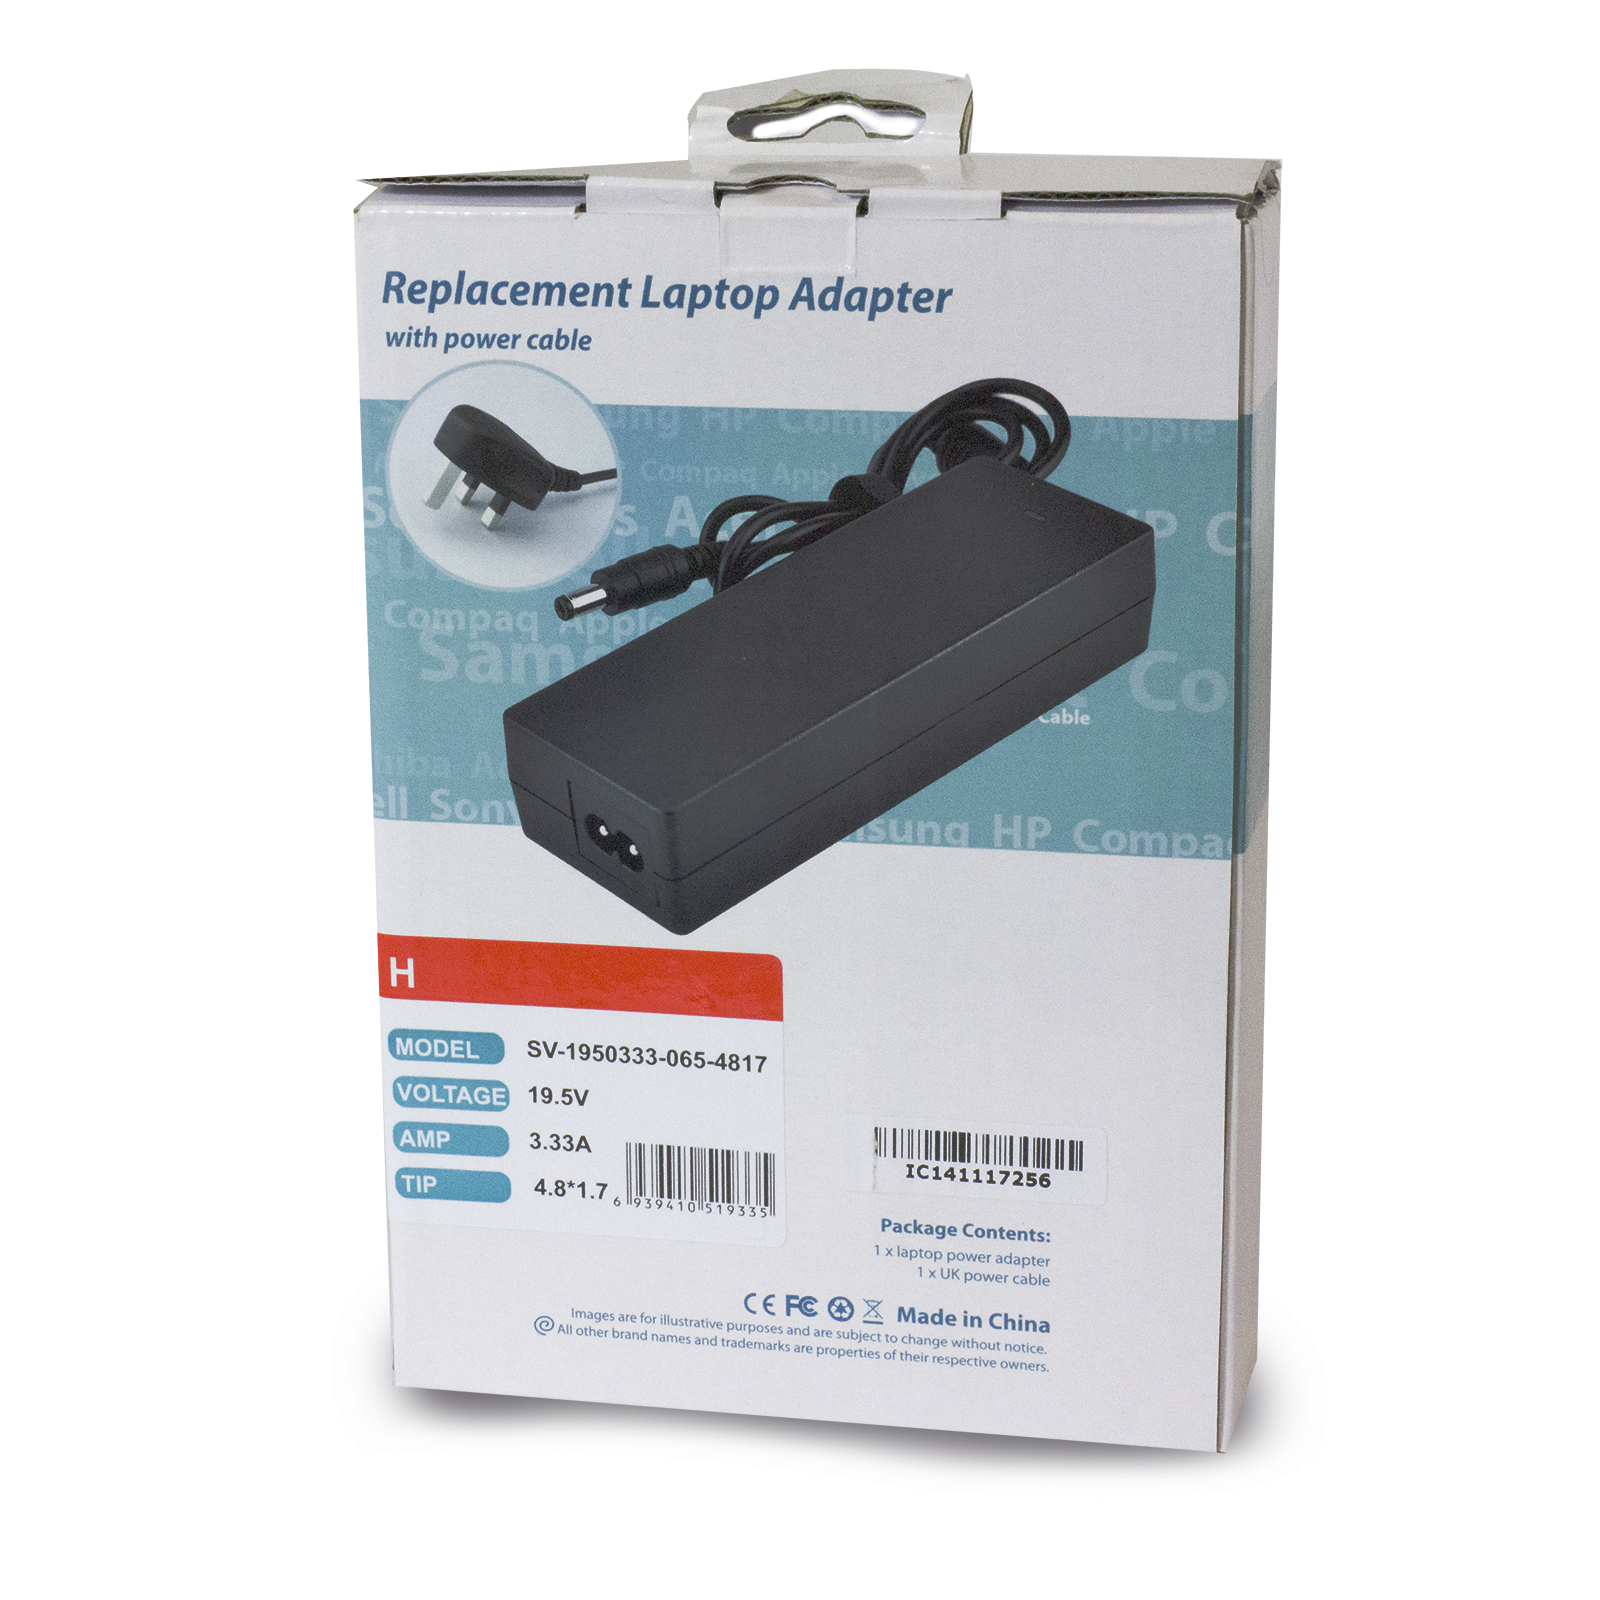 HP Envy 4 Envy 6 Compact 195V 333A 65W Charger 48mm X 17mm